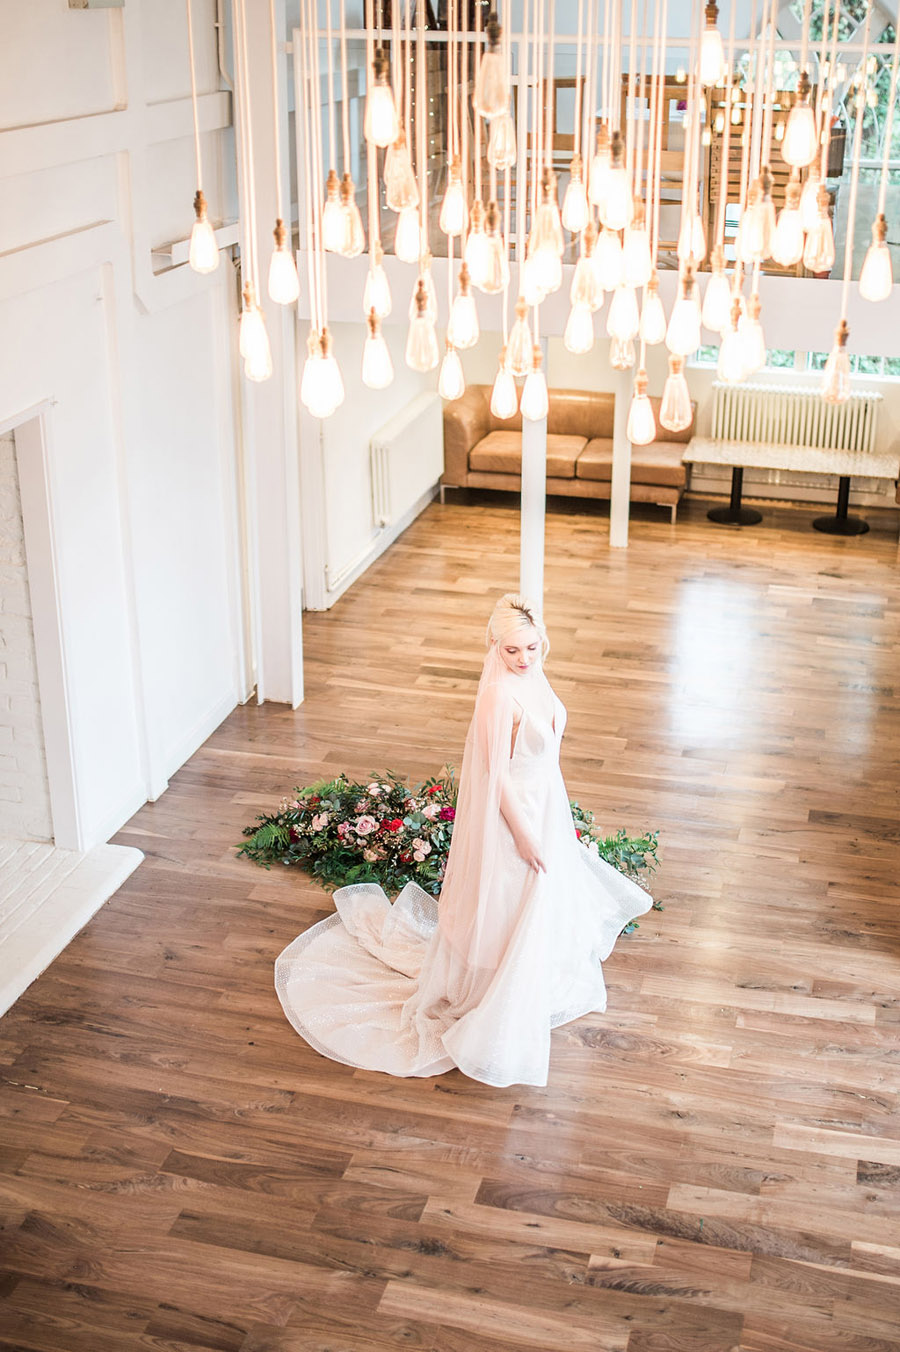 Modern luxe wedding style ideas with images by Laura Jane Photography (1)